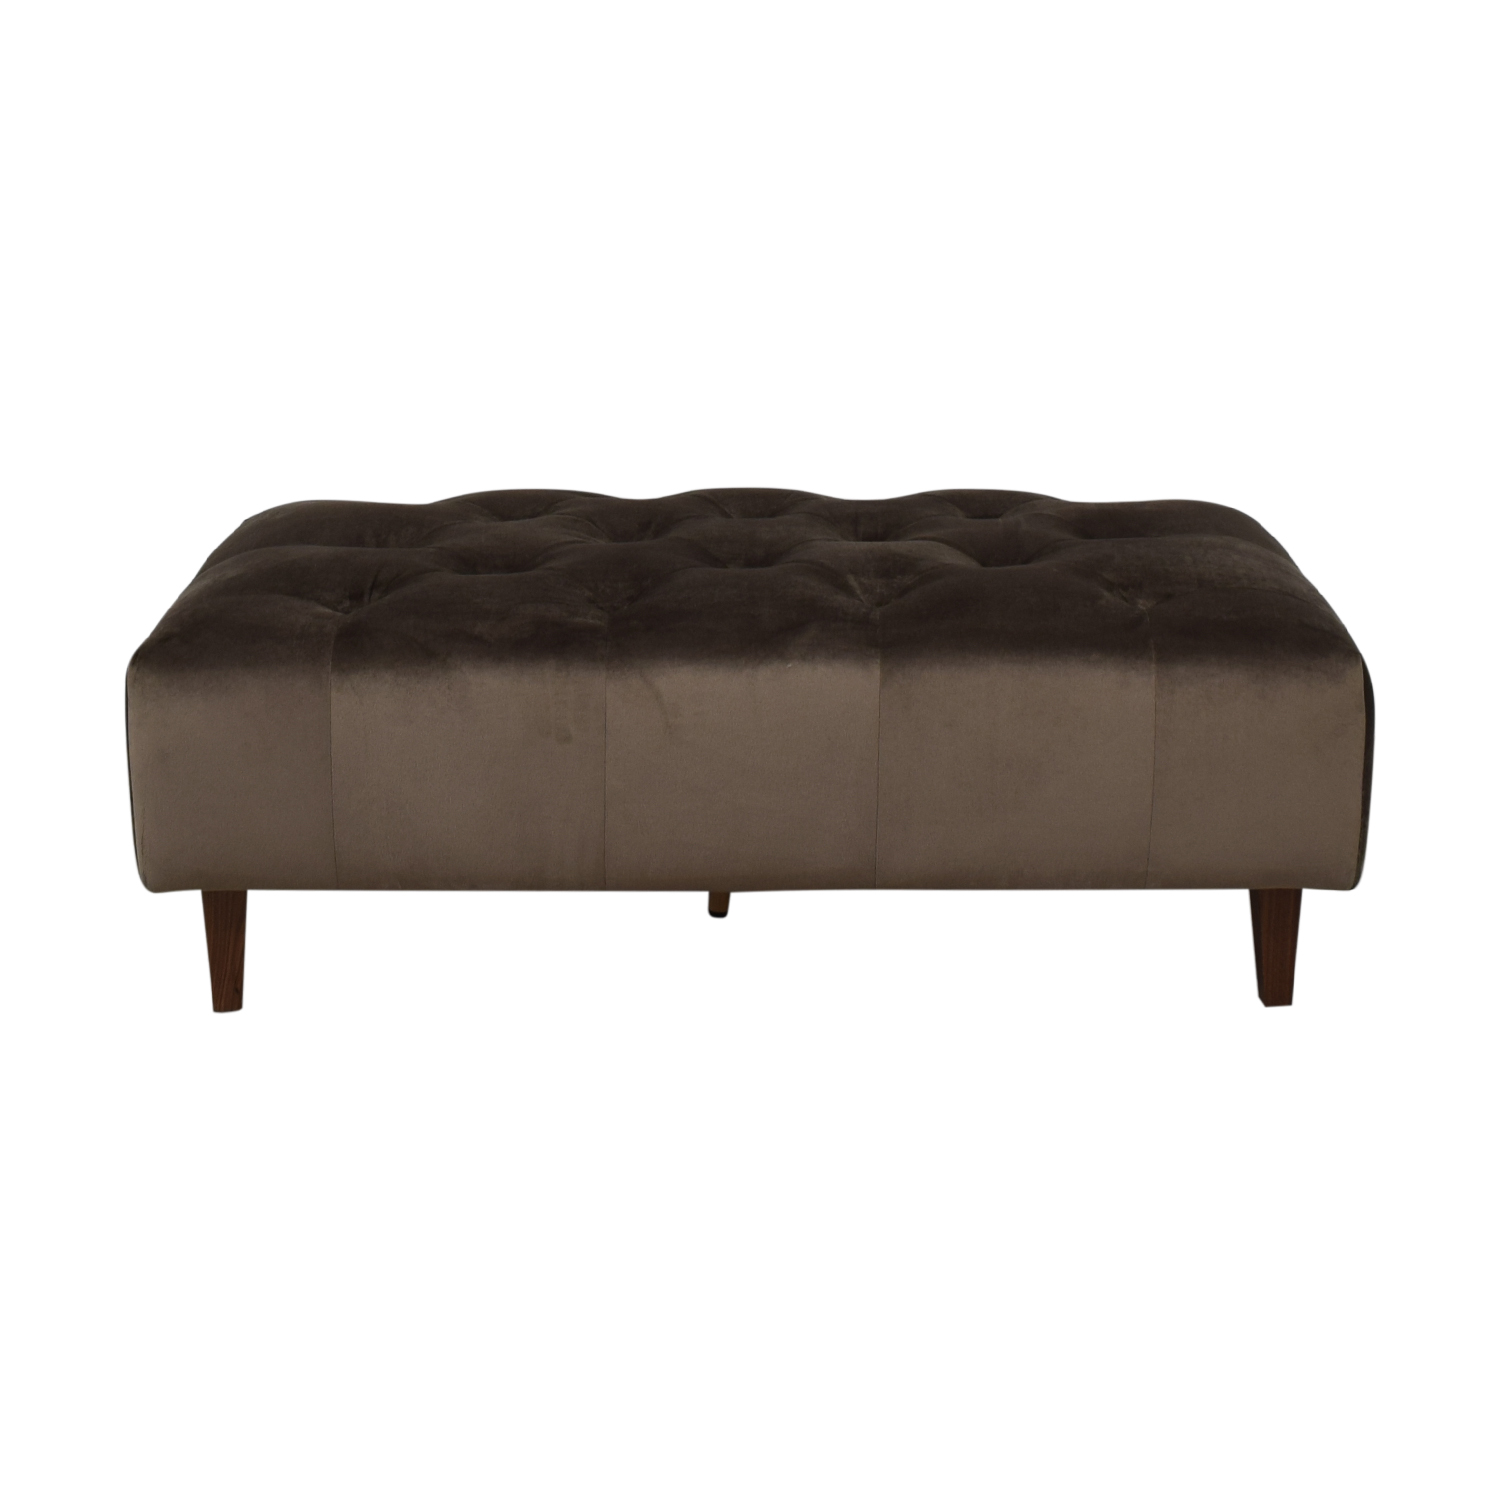 Interior Define Ms. Chesterfield Mod Velvet Quartz Tufted Ottoman for sale